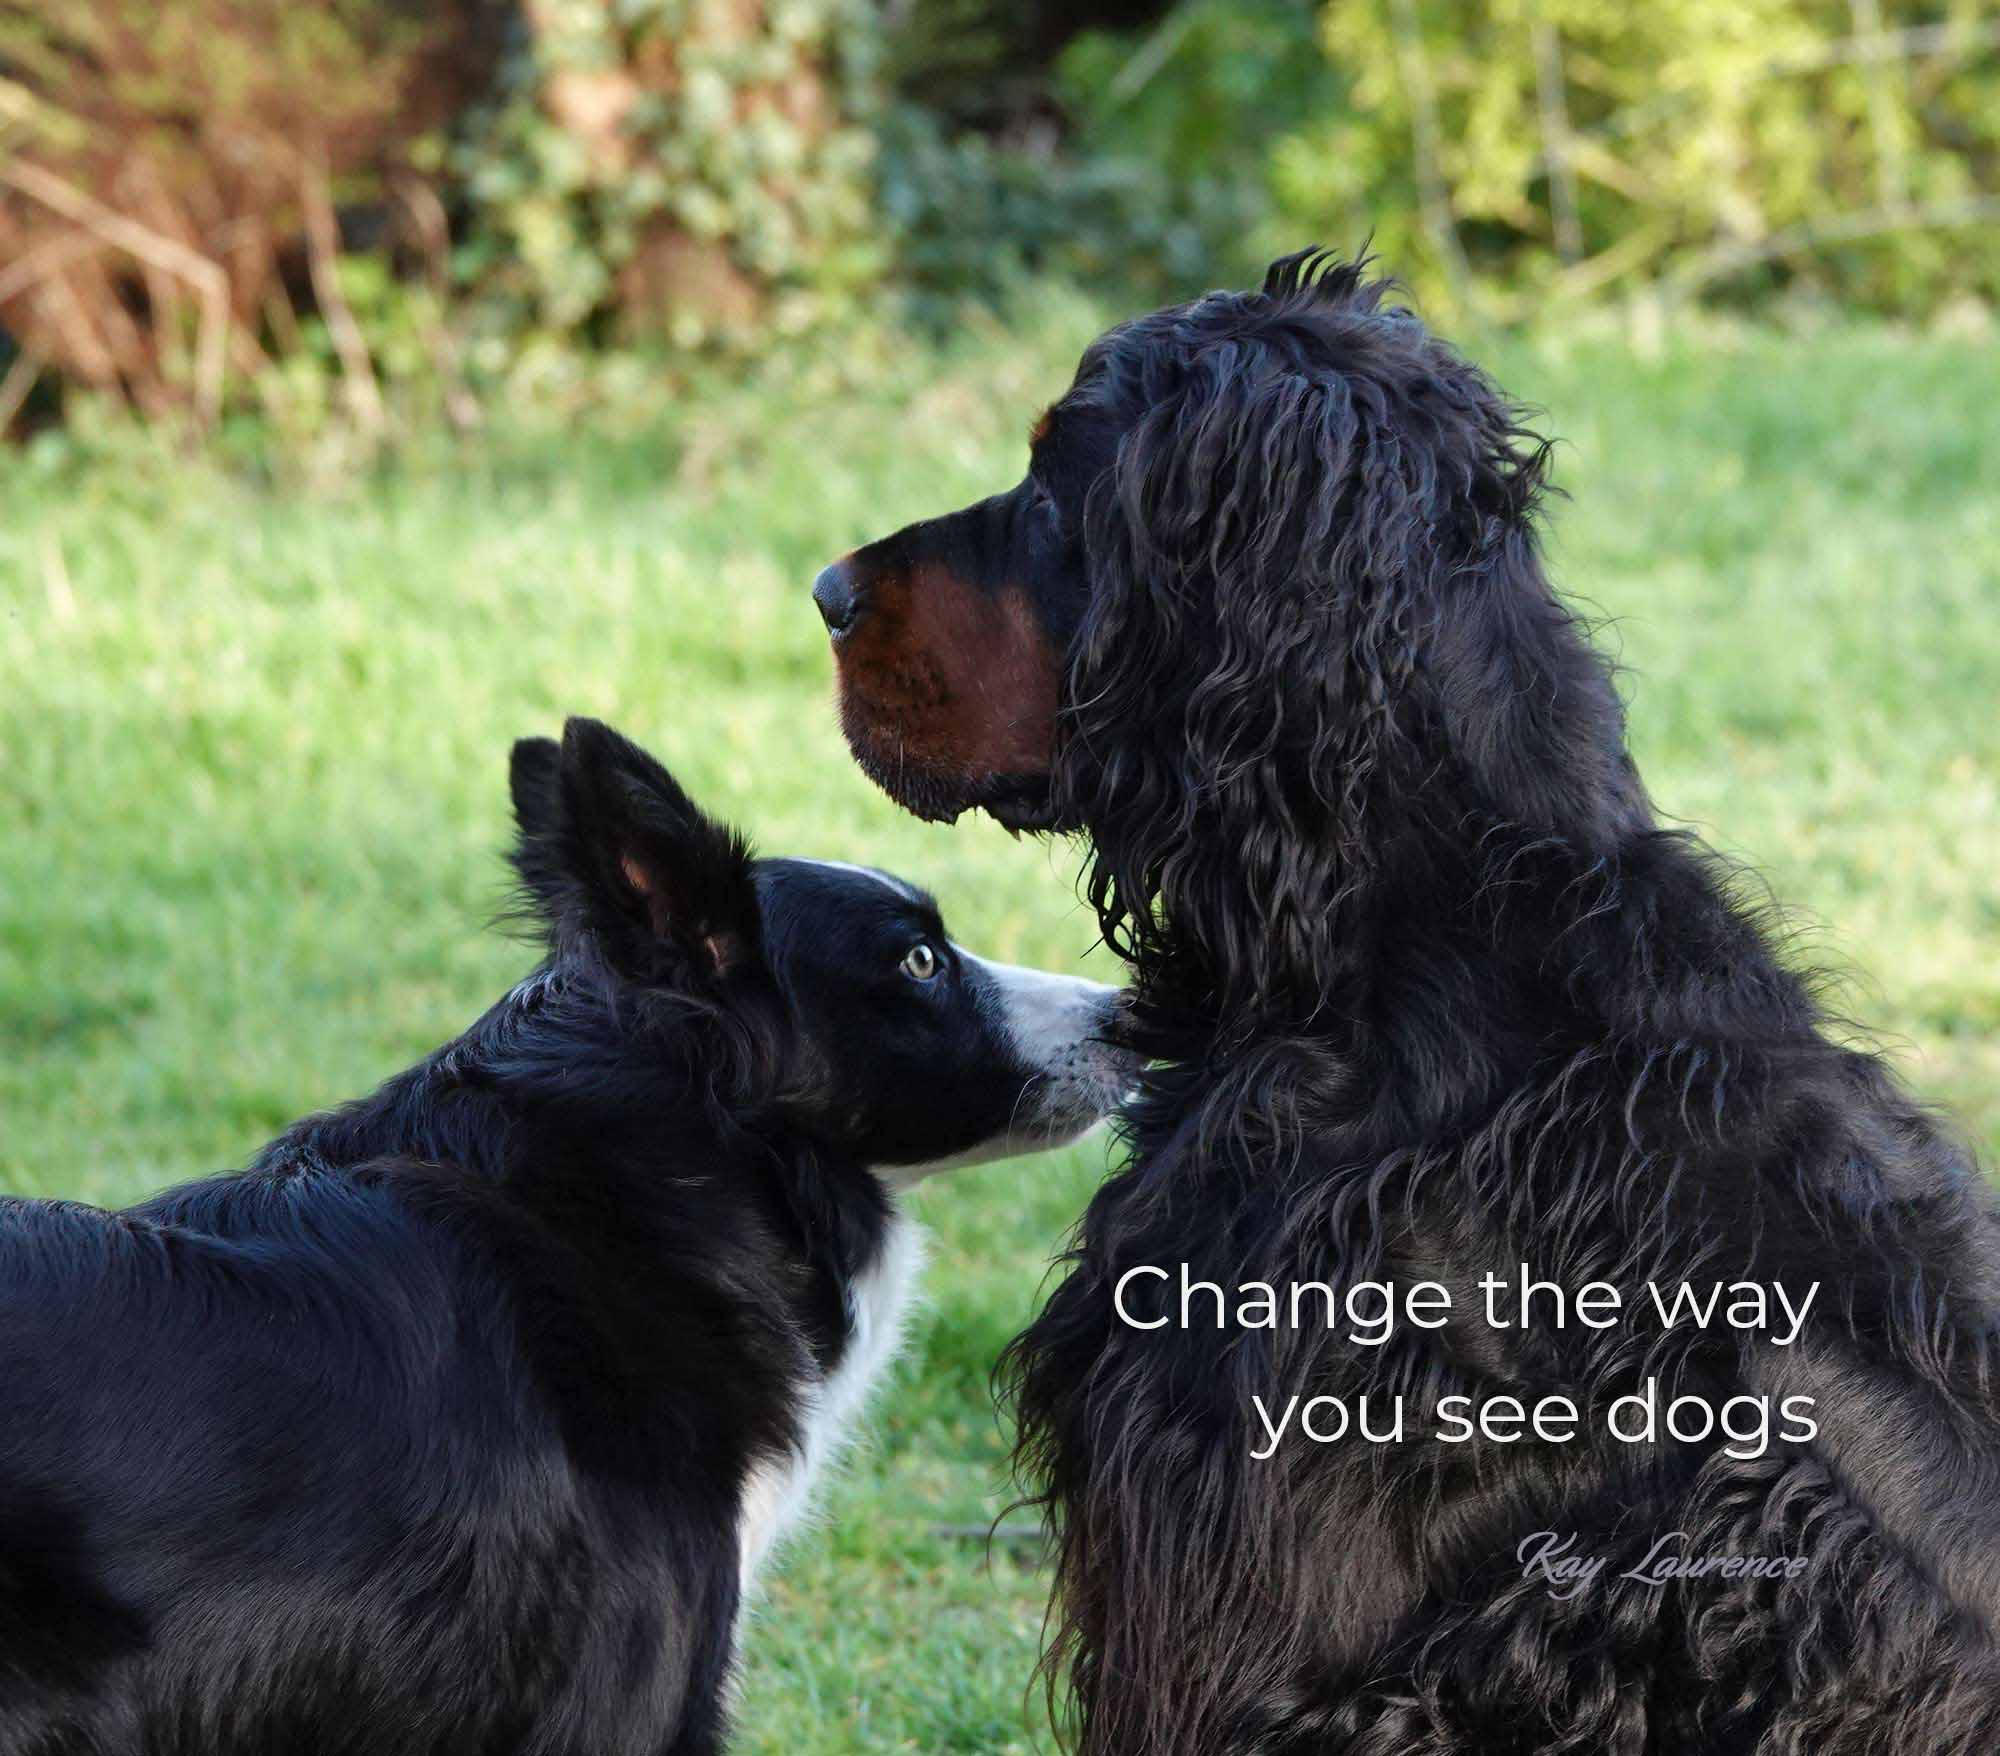 change the way you see dogs